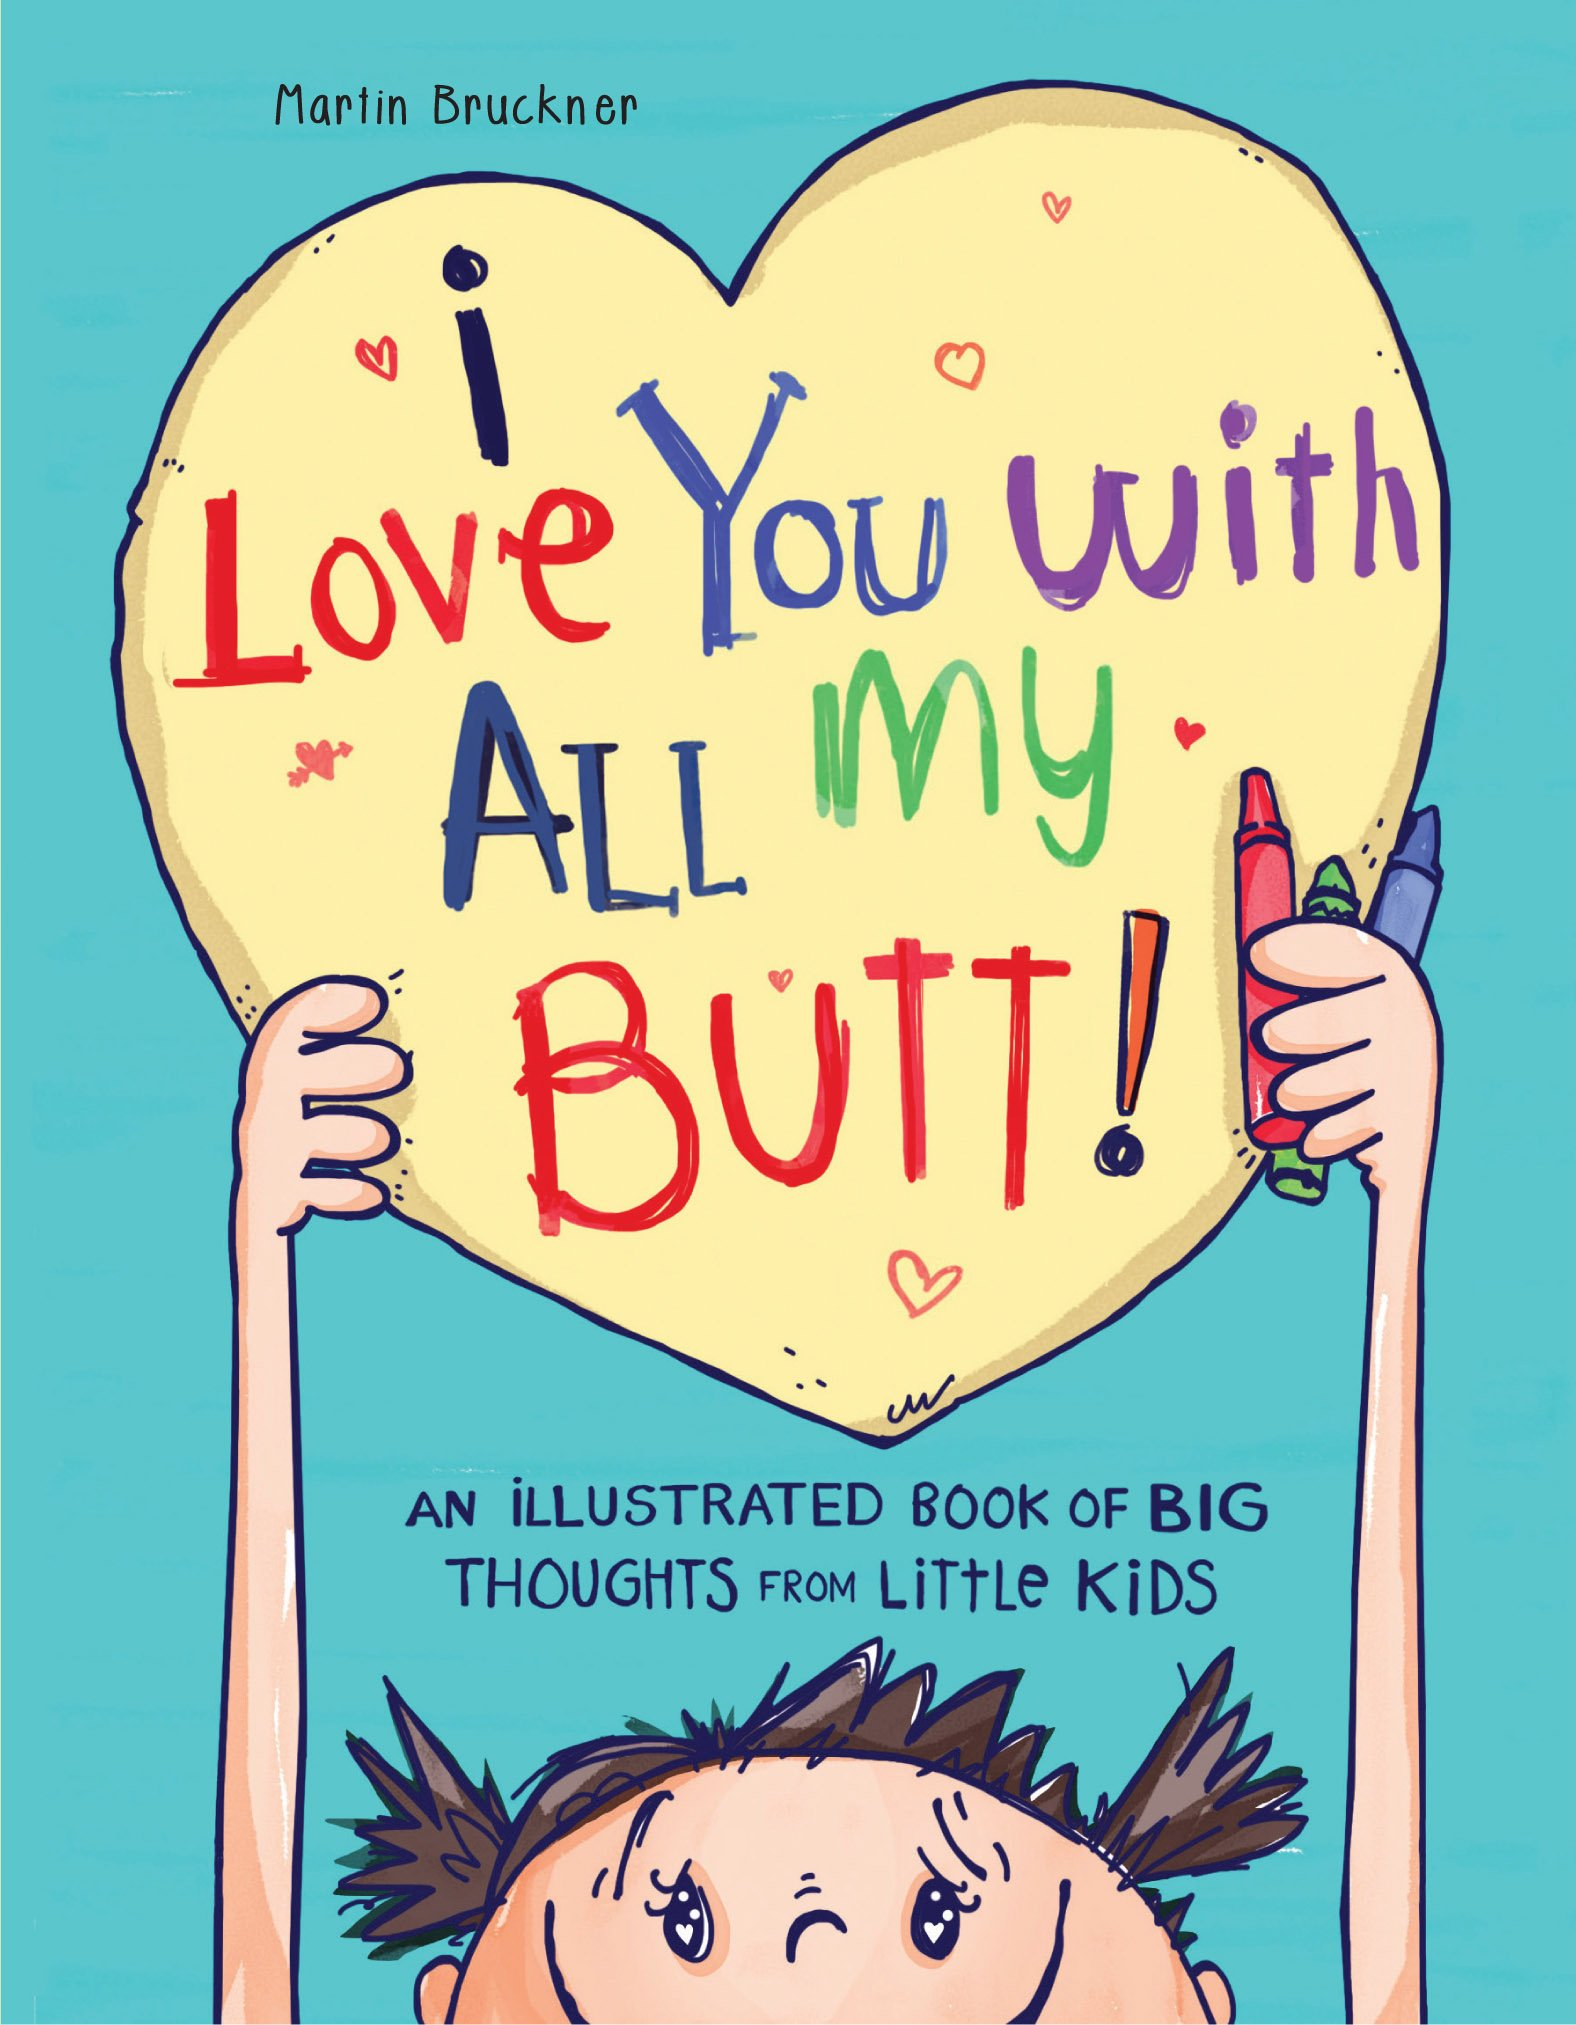 Amazon.com: I Love You with All My Butt!: An Illustrated Book of Big ...